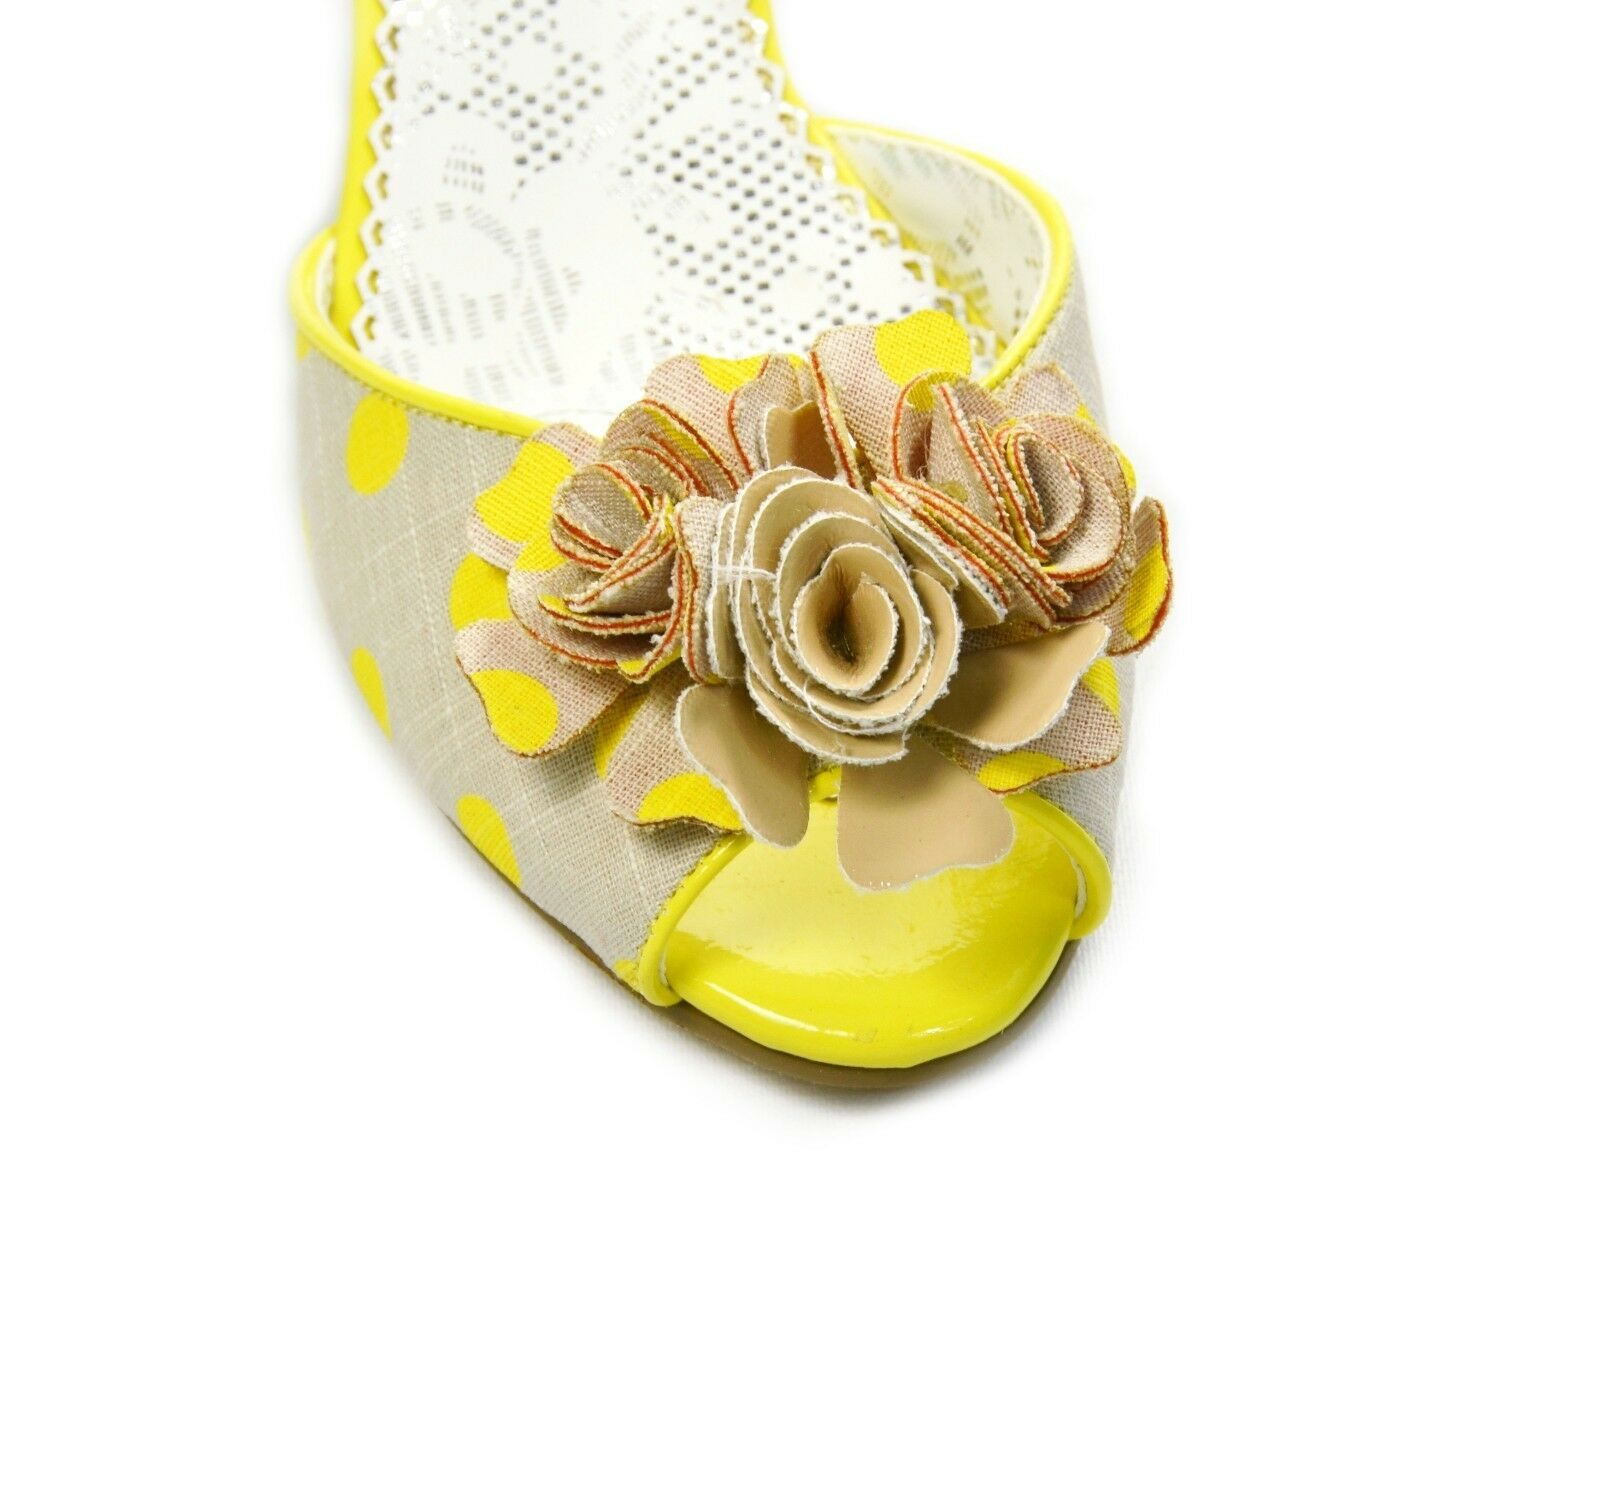 Poetic Licence Damens Crazy Daisy  Wedge Sandales Schuhes Yellow  Daisy 6.5, 7.0, 7.5 f4e53e